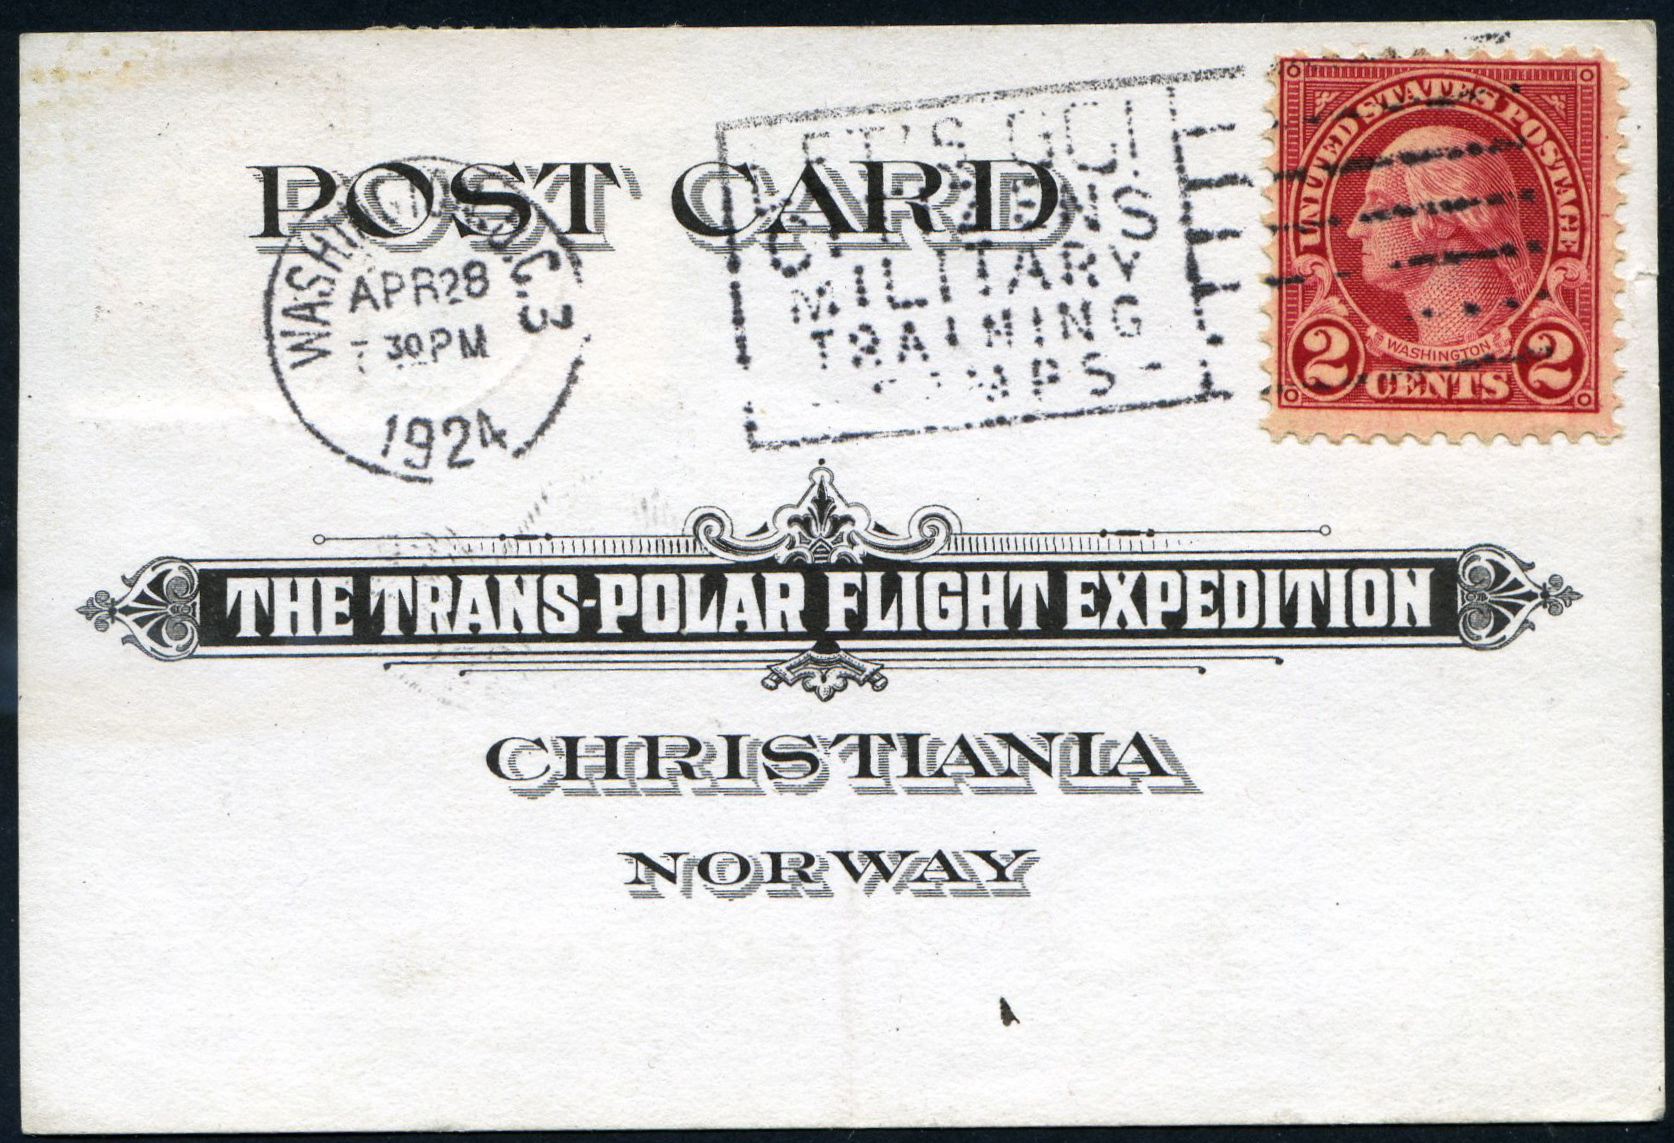 #595 on Trans-Polar Flight Expedition Cover